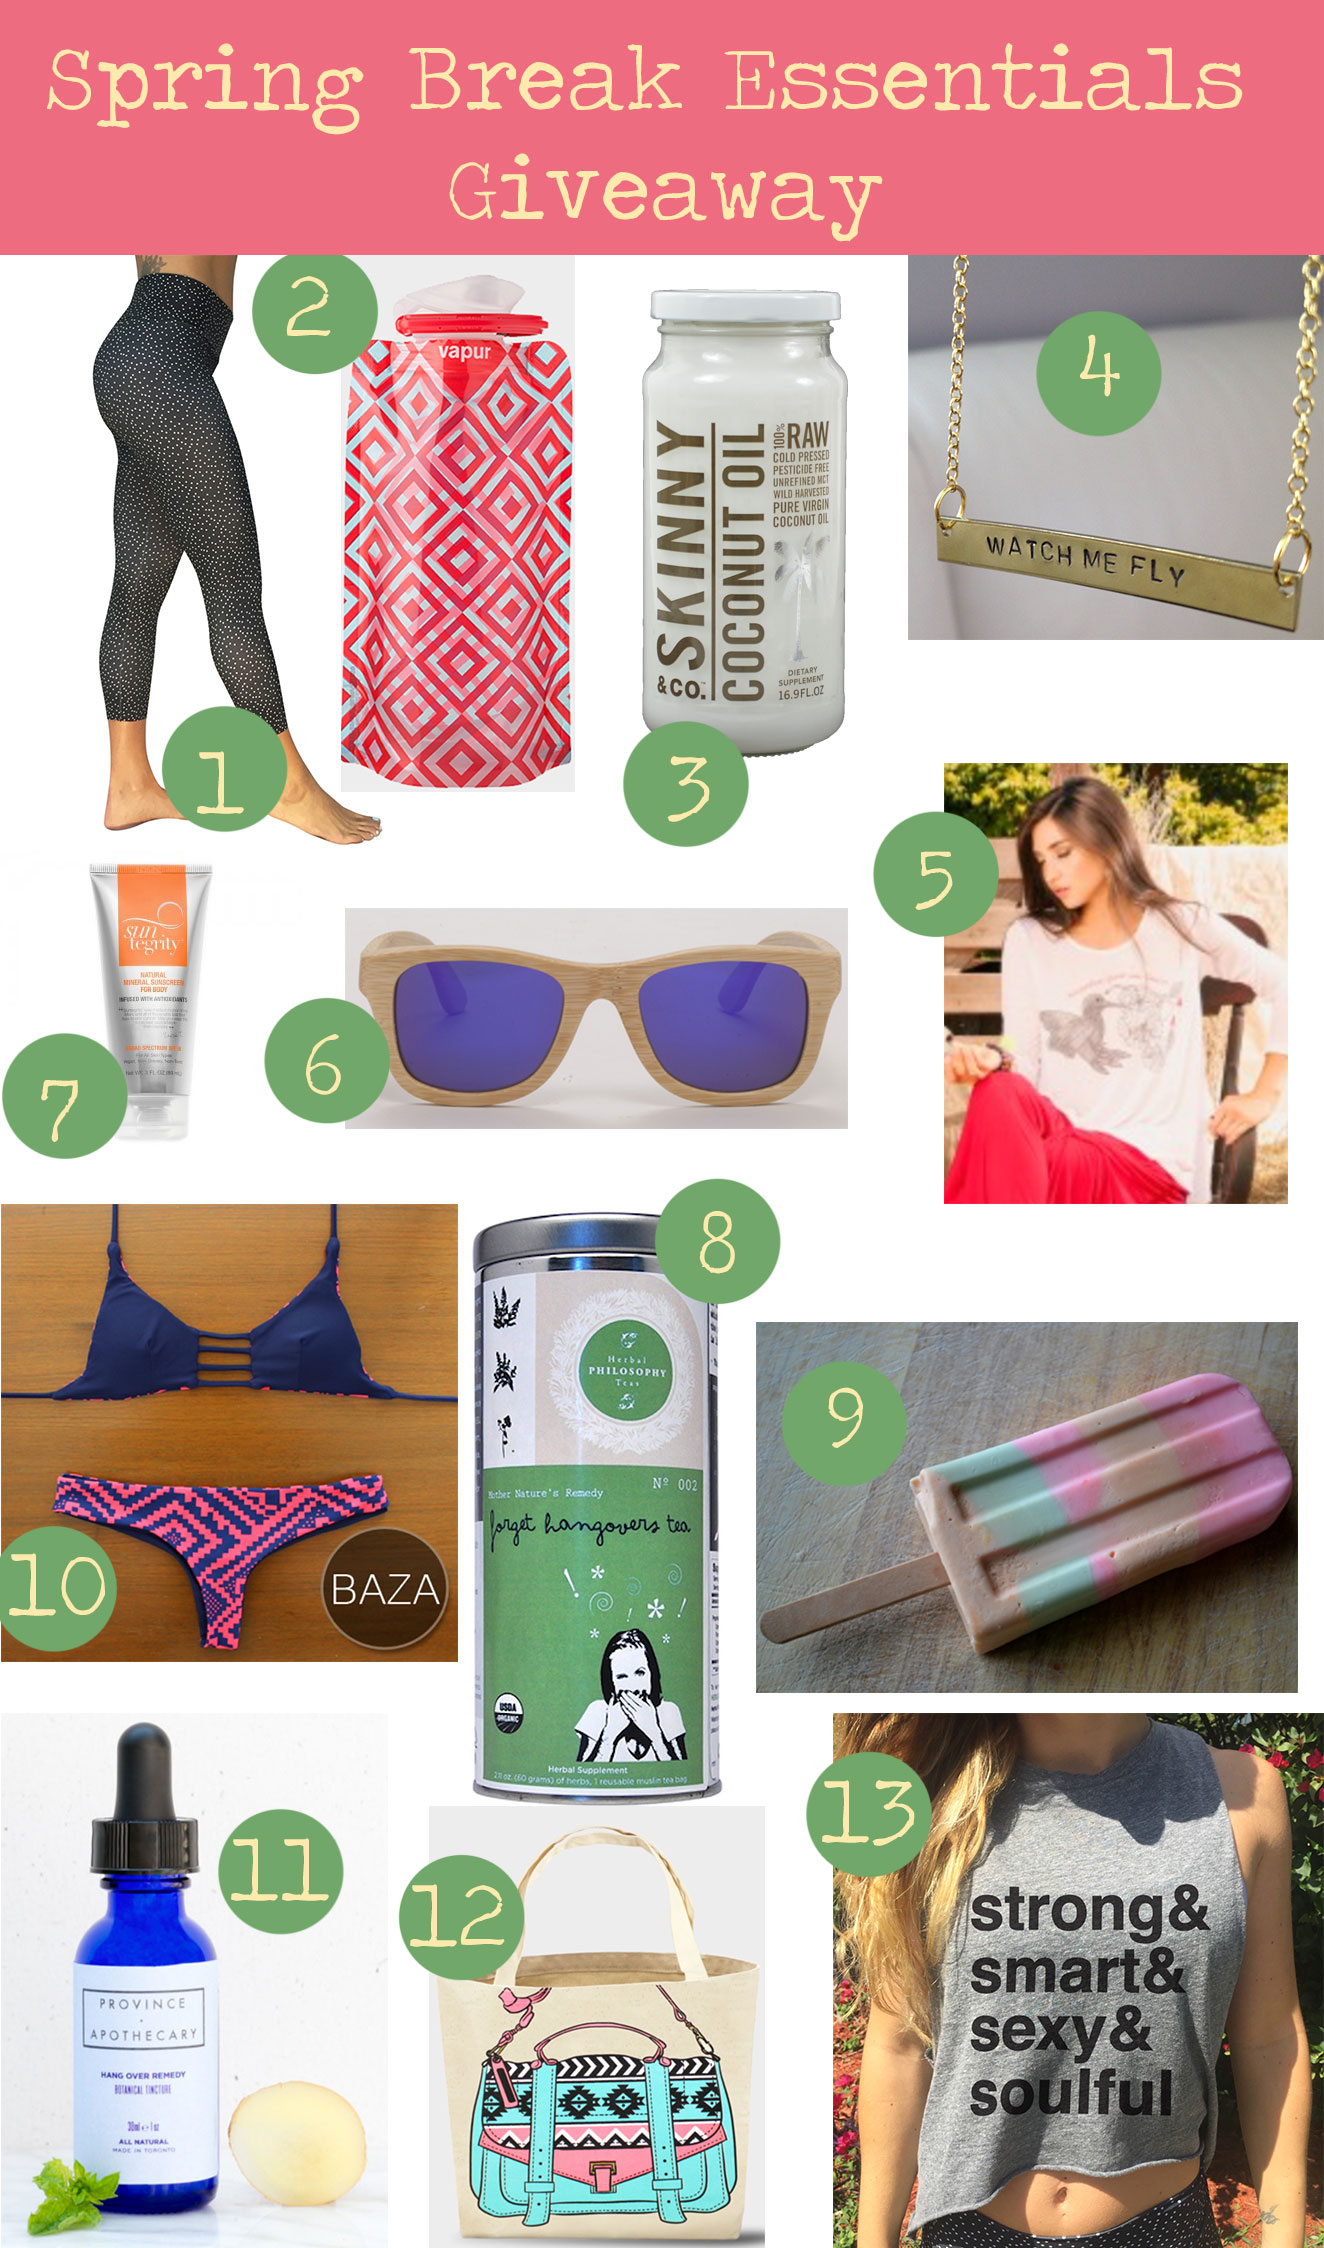 Pin now and enter to win these spring break essentials